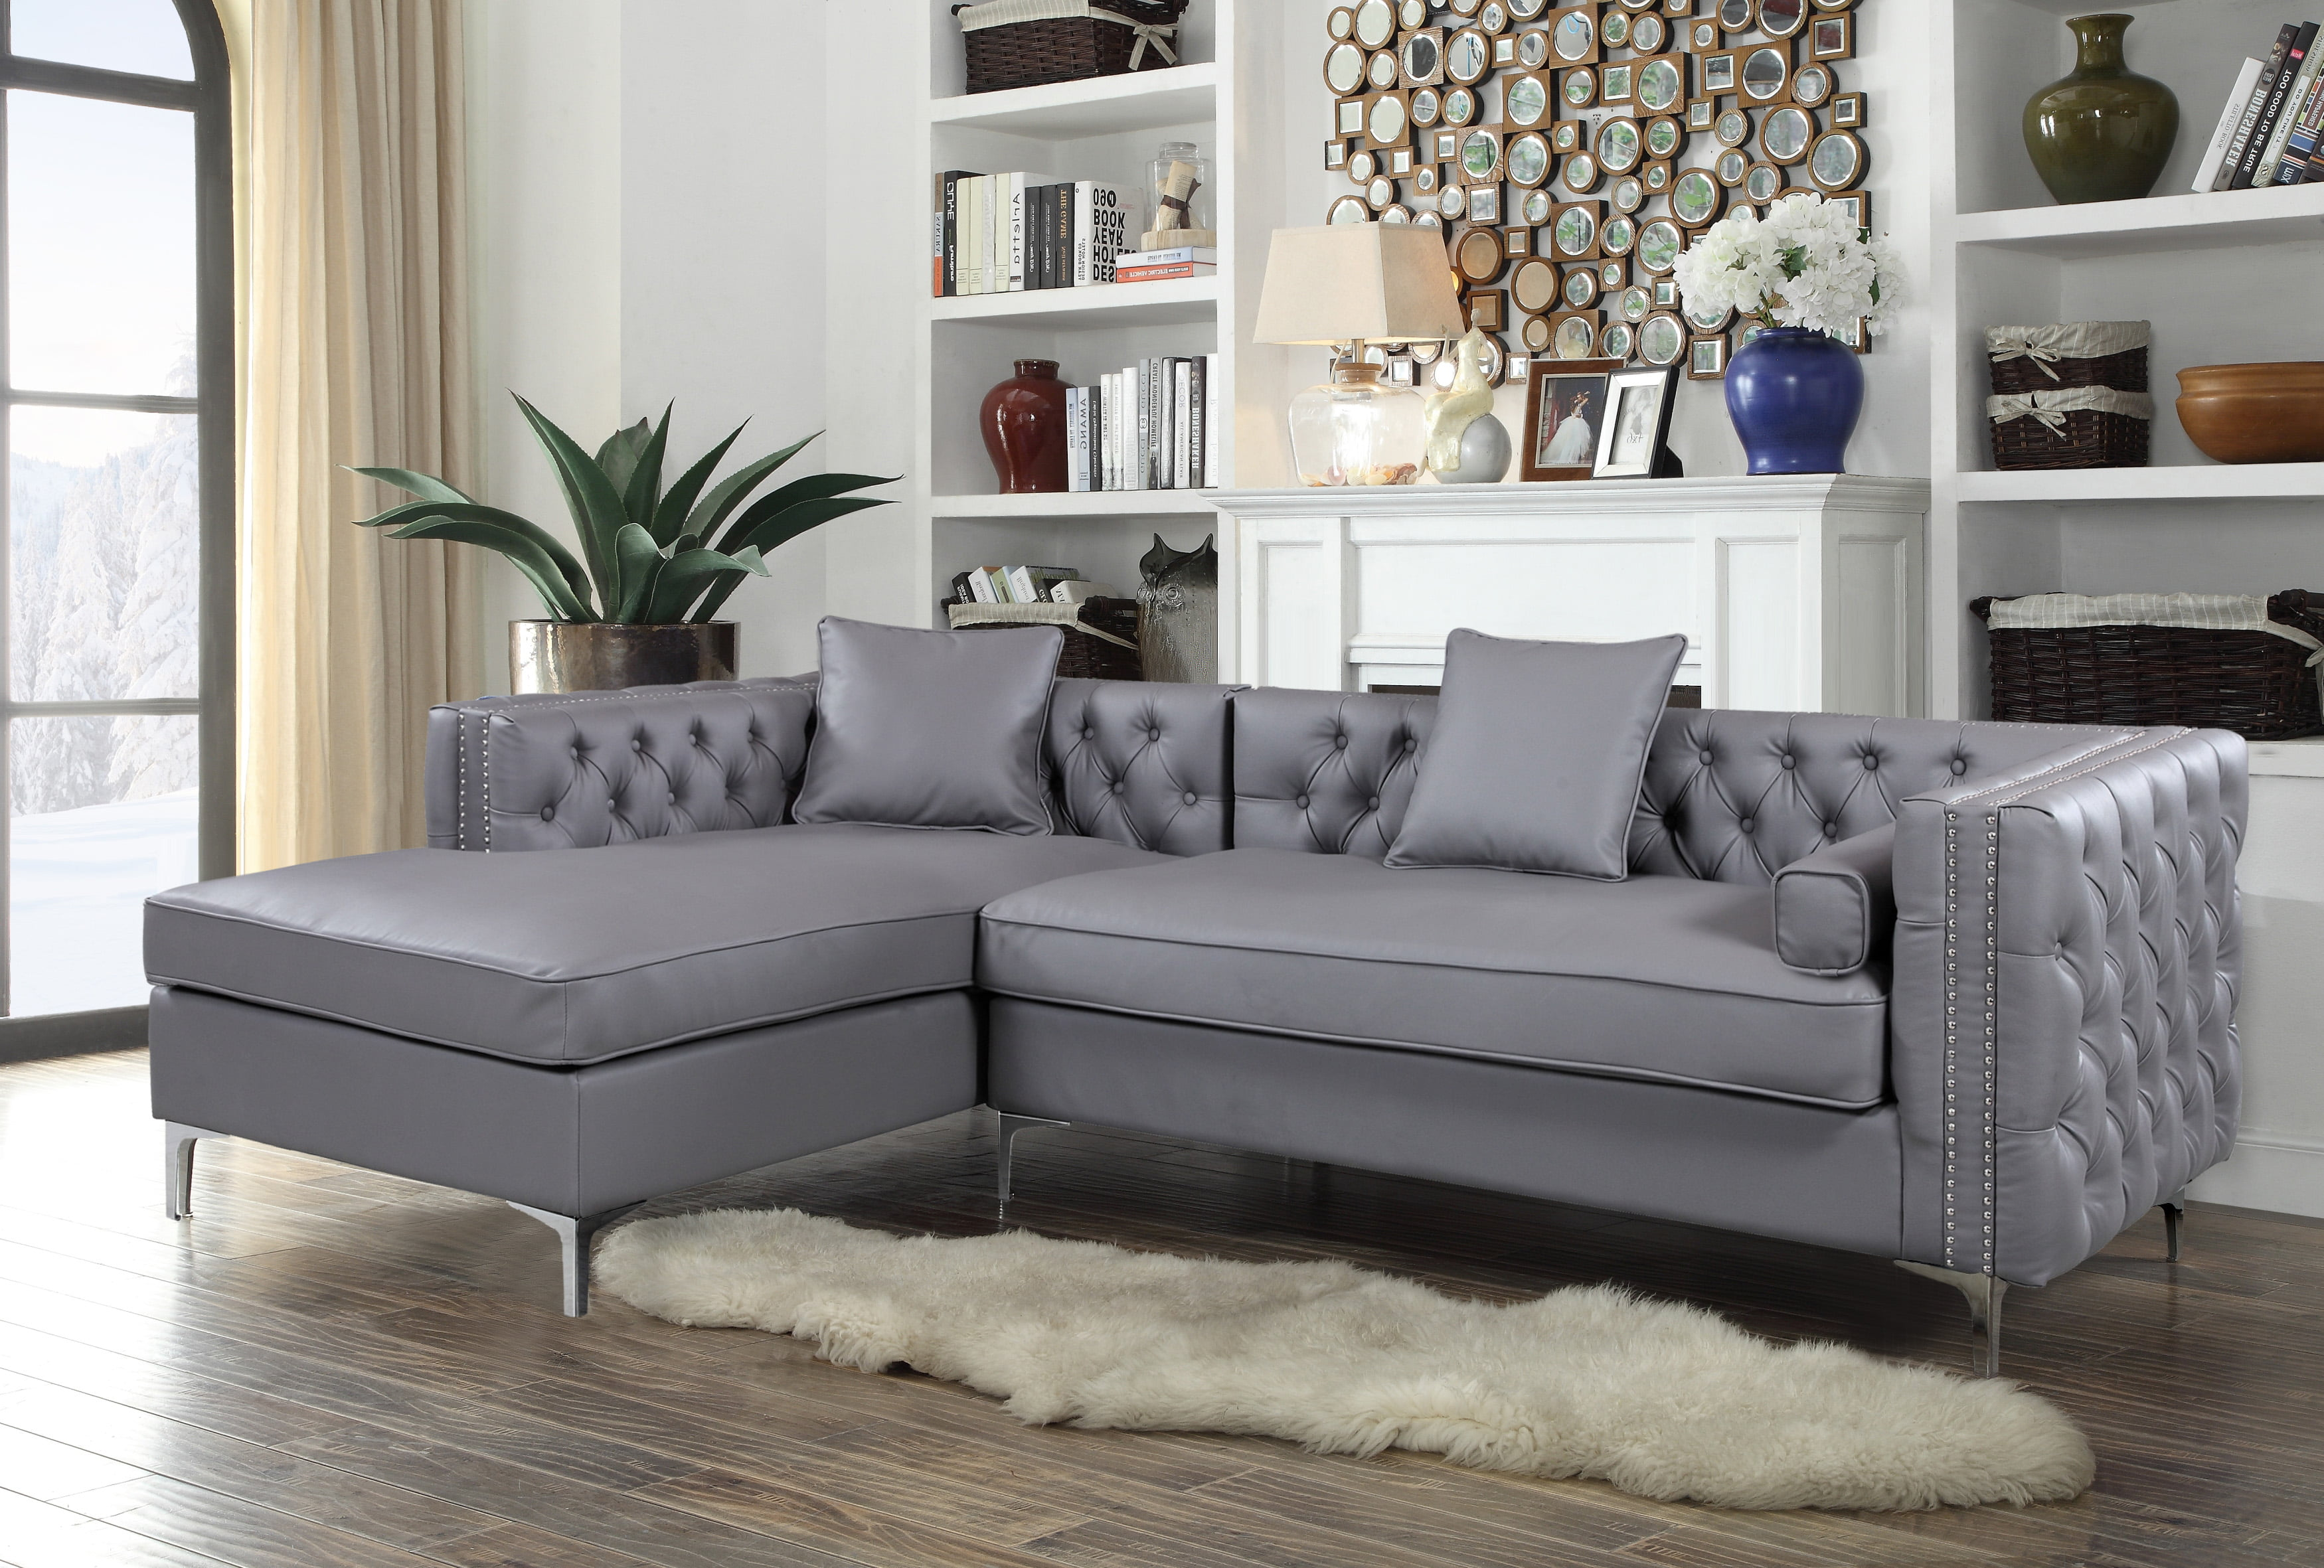 Chic home monet pu leather modern contemporary button tufted with silver nail head trim silver tone metal y leg left facing sectional sofa grey walmart